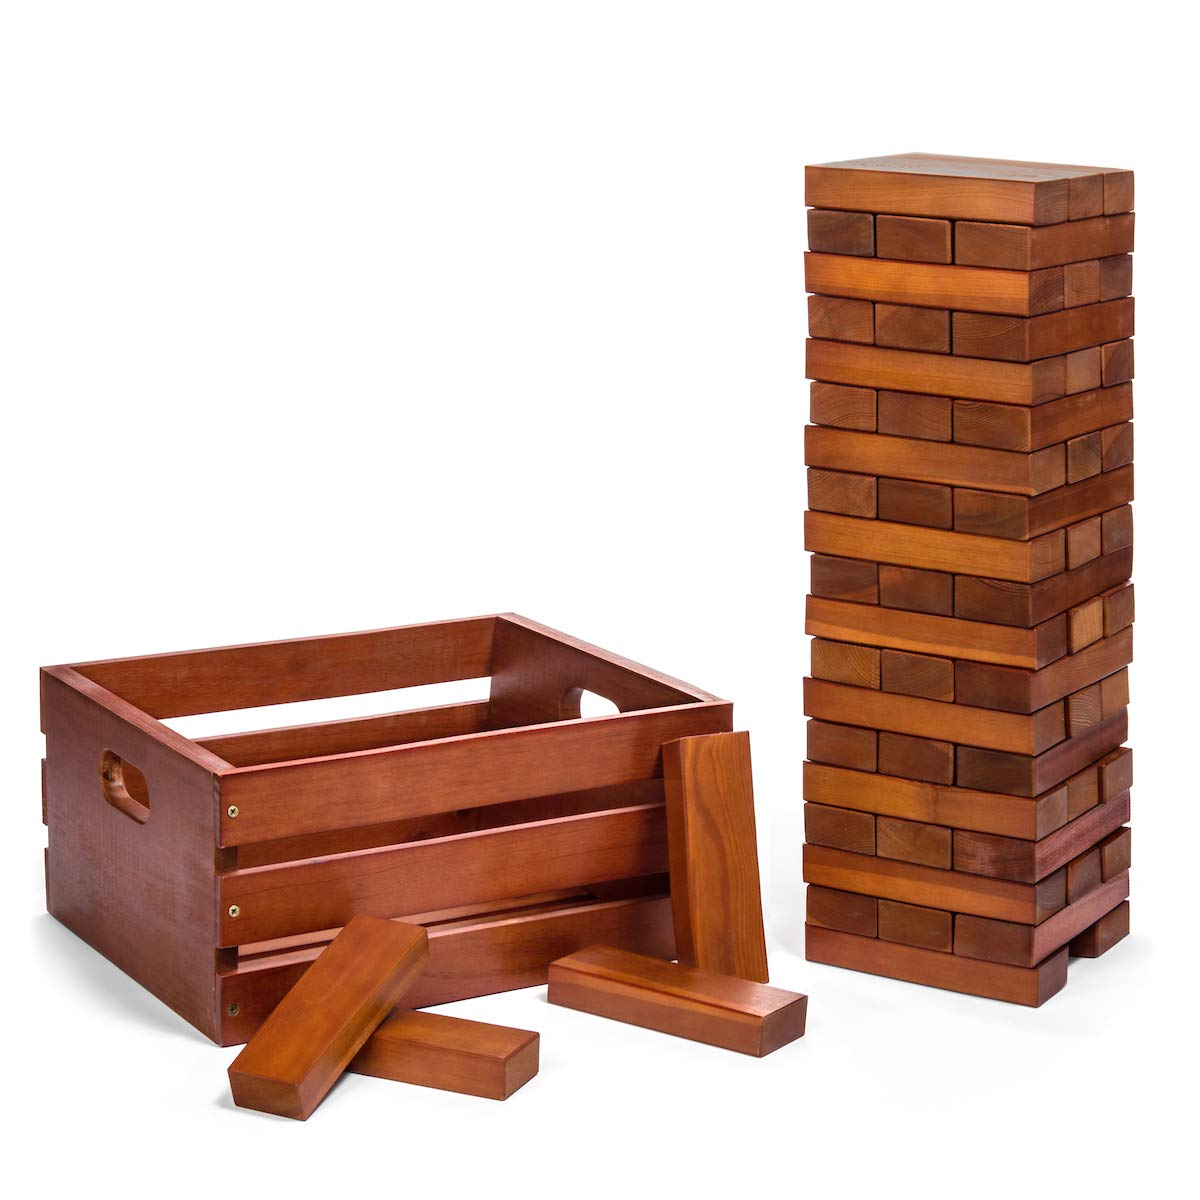 Tailgating Pros Giant Wooden Tumbling Timbers - Stained - 60 Block Tower Stacking Game - W/ Wooden Crate by Tailgating Pros